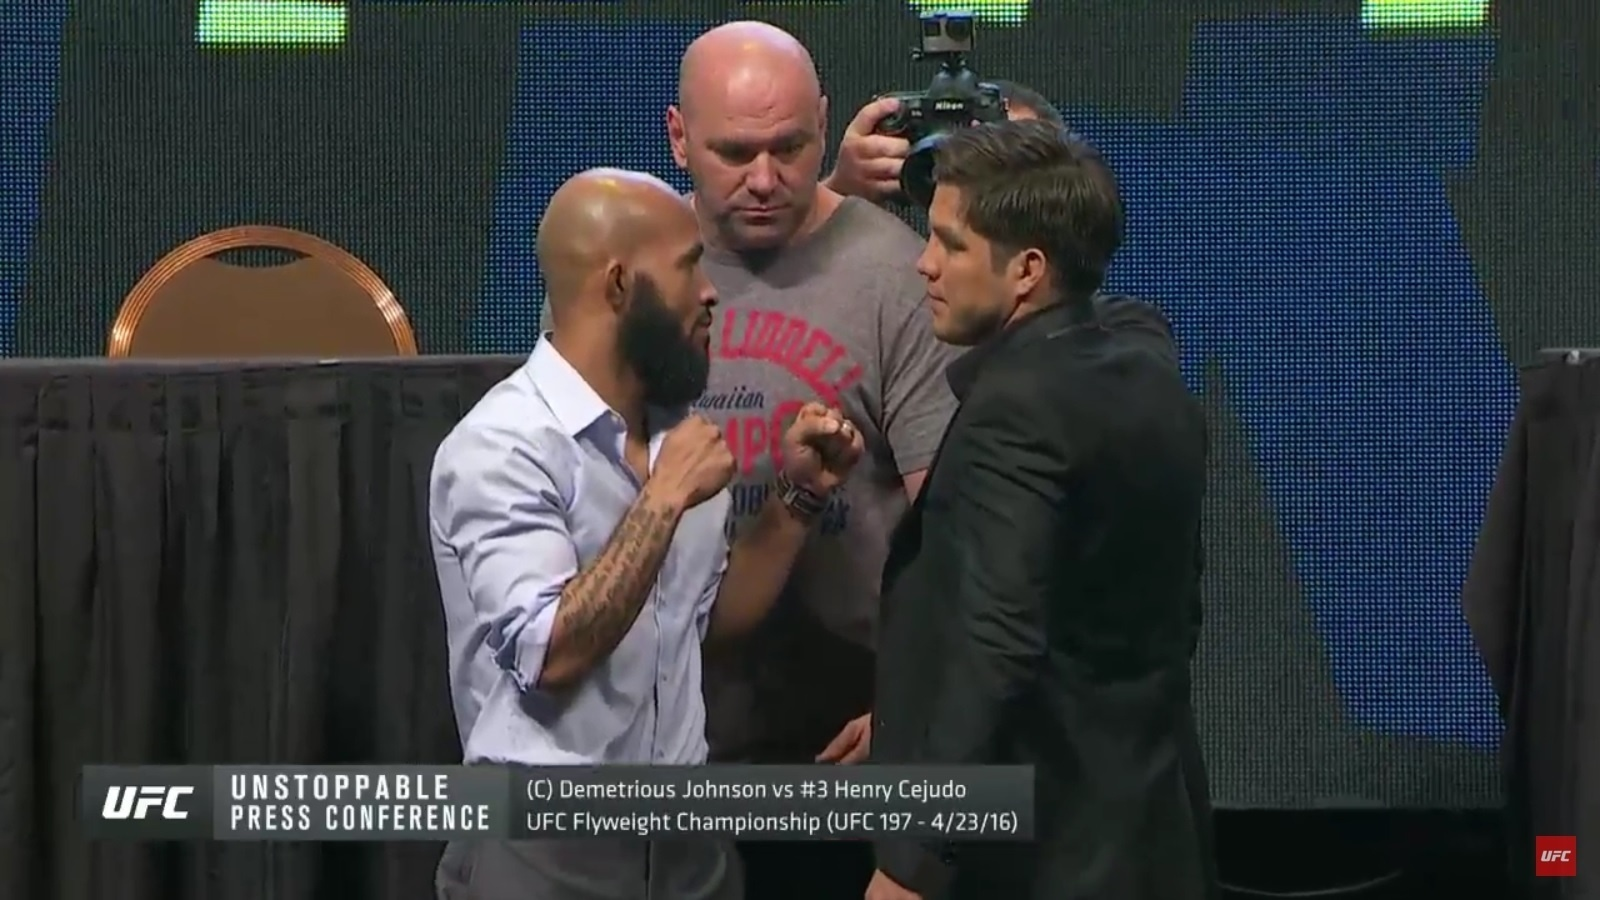 Demetrious Johnson e Henry Cejudo se encaram em evento no UFC